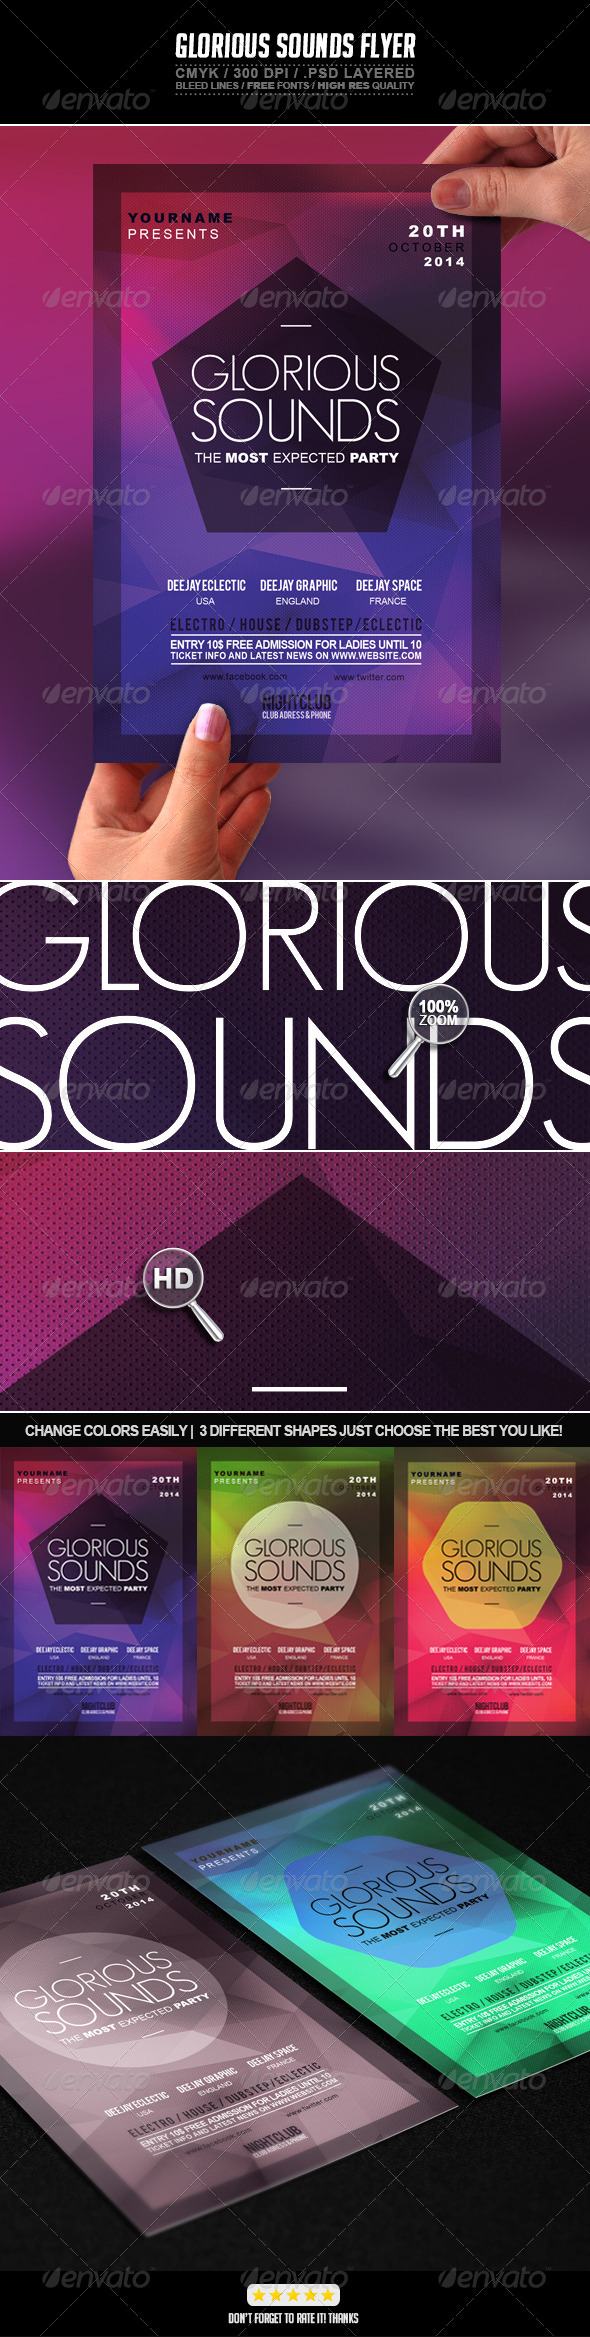 Glorious Sounds Party Flyer PSD Template - Events Flyers